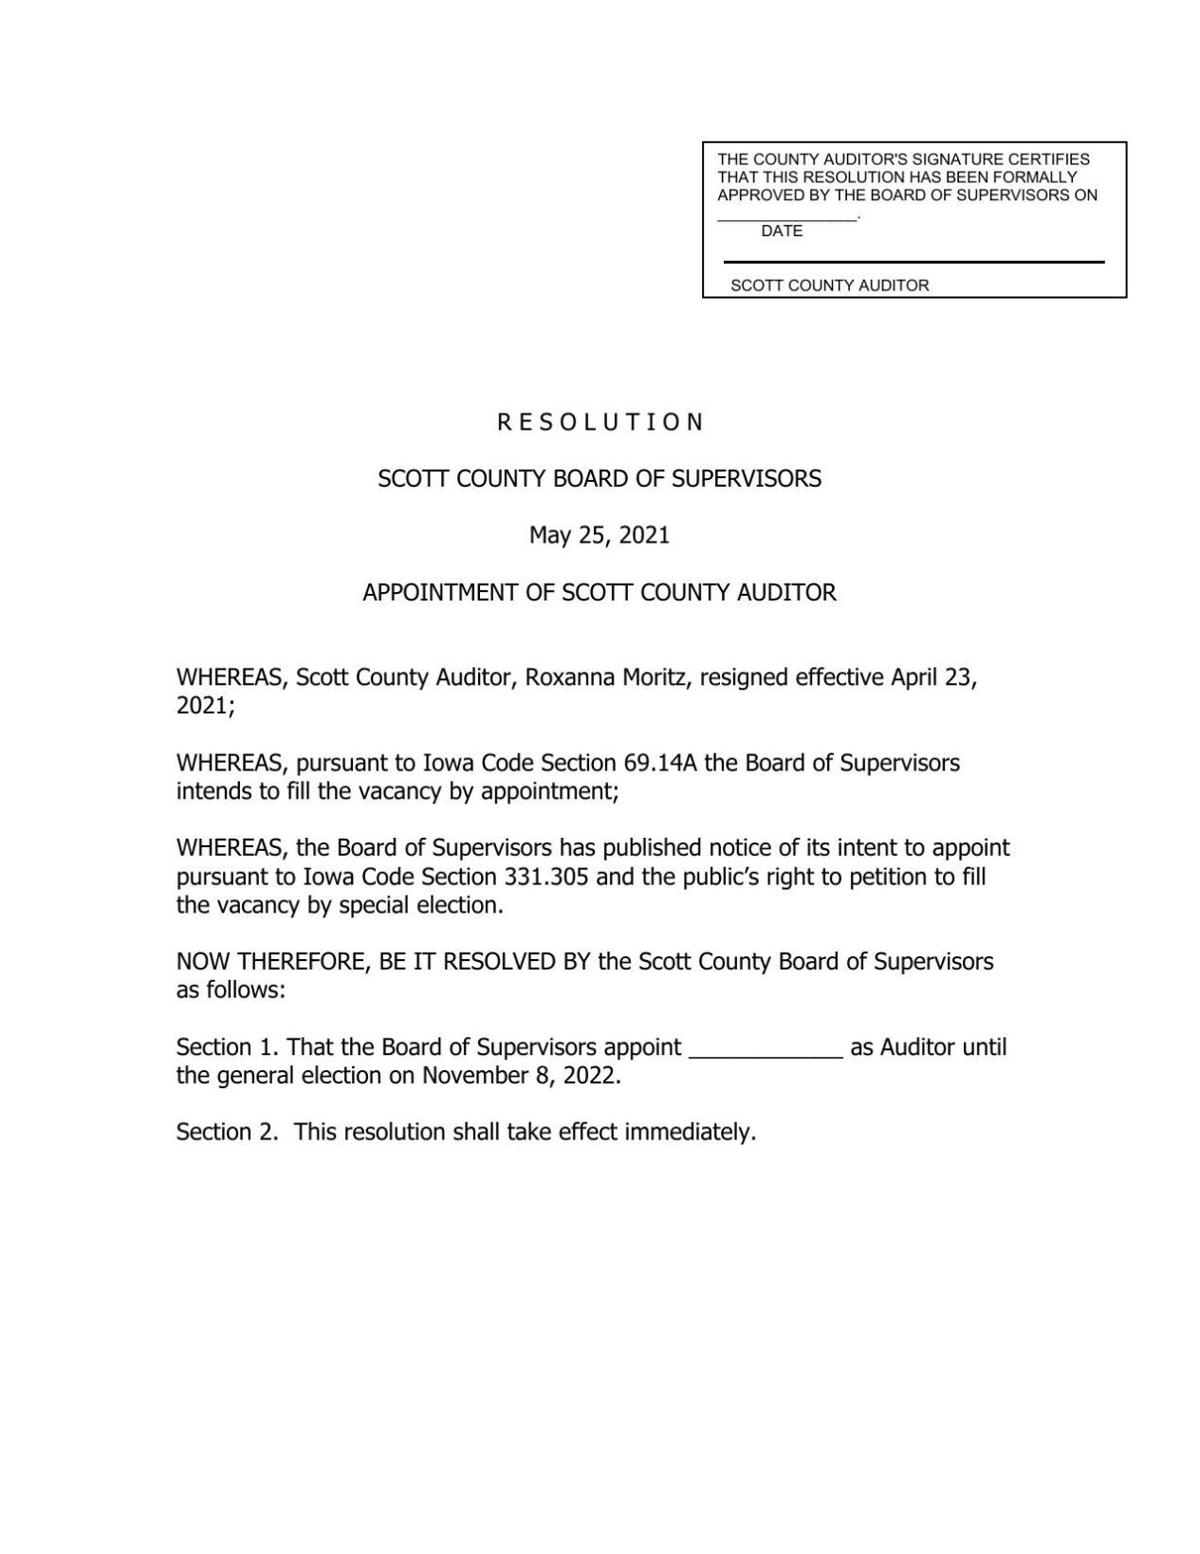 Resolution to appoint new Scott County Auditor